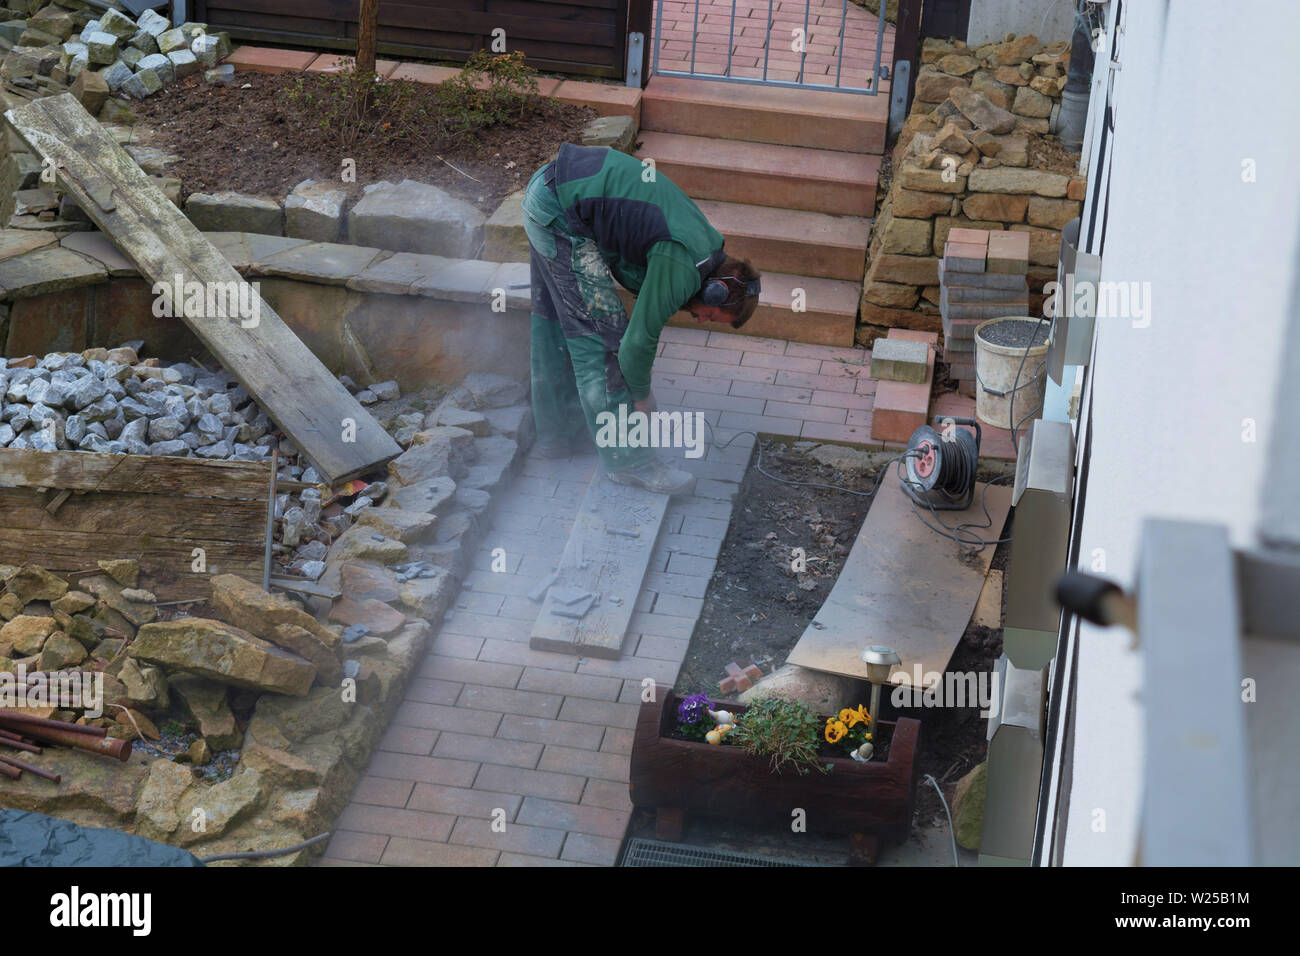 Reworking with technology Tile cutting with an angle grinder - Stock Image